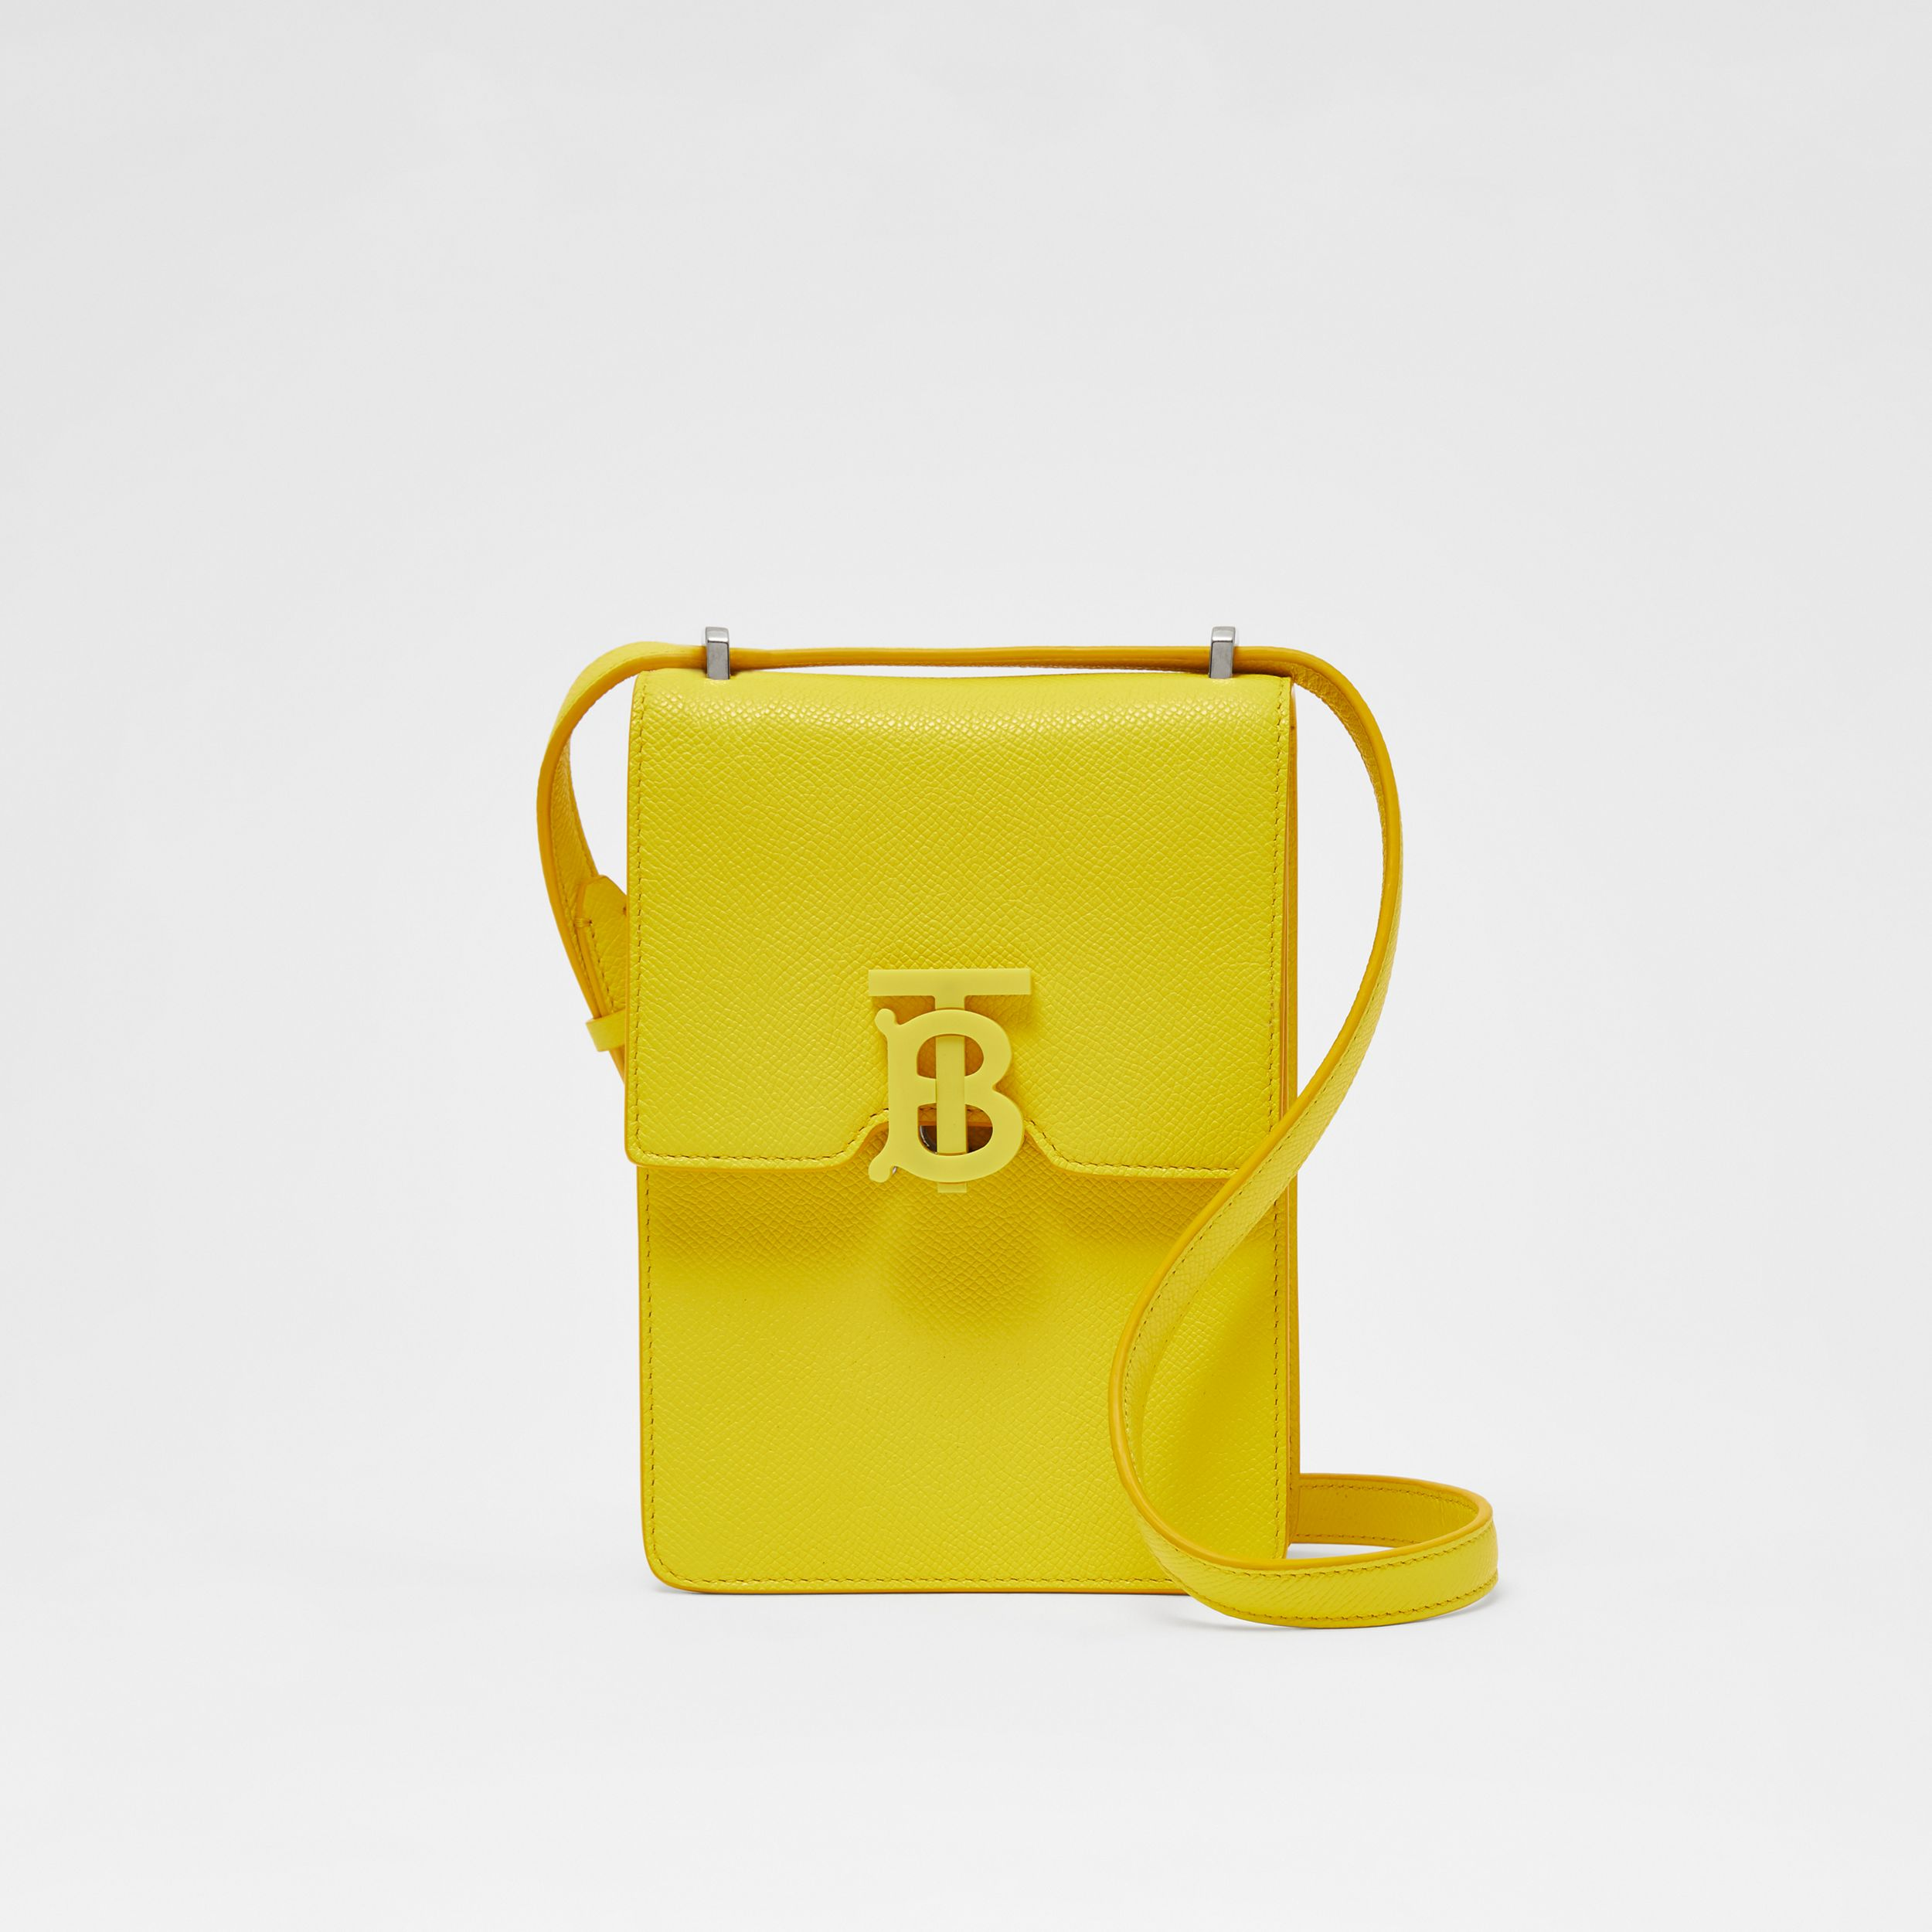 Grainy Leather Robin Bag in Marigold Yellow | Burberry - 1